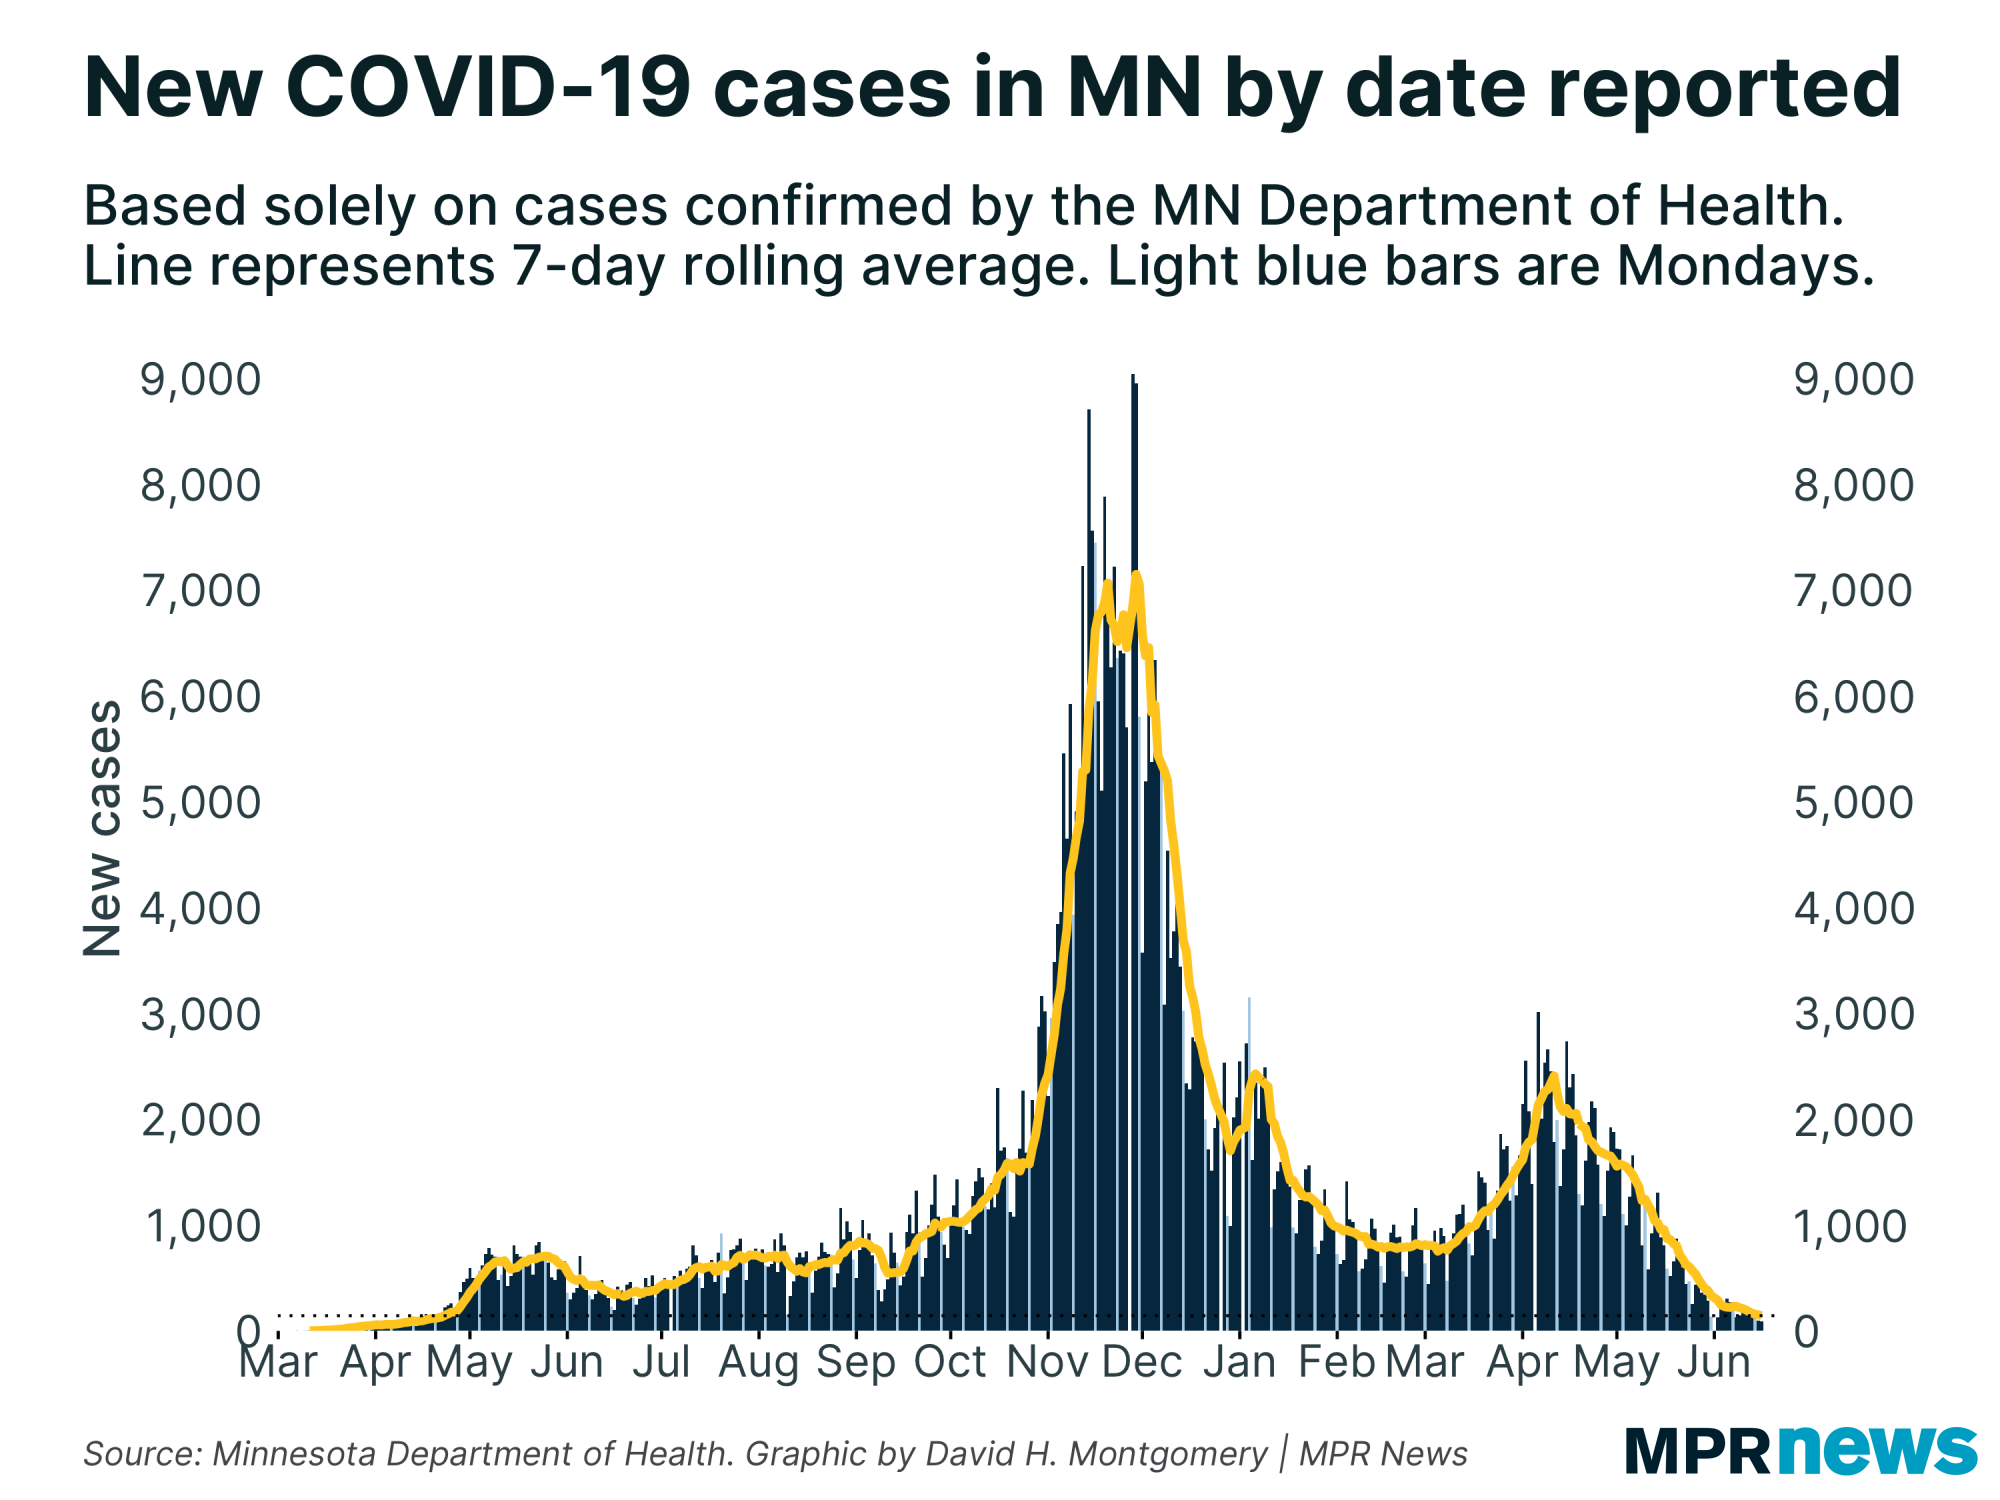 New COVID-19 cases in Minnesota by date reported